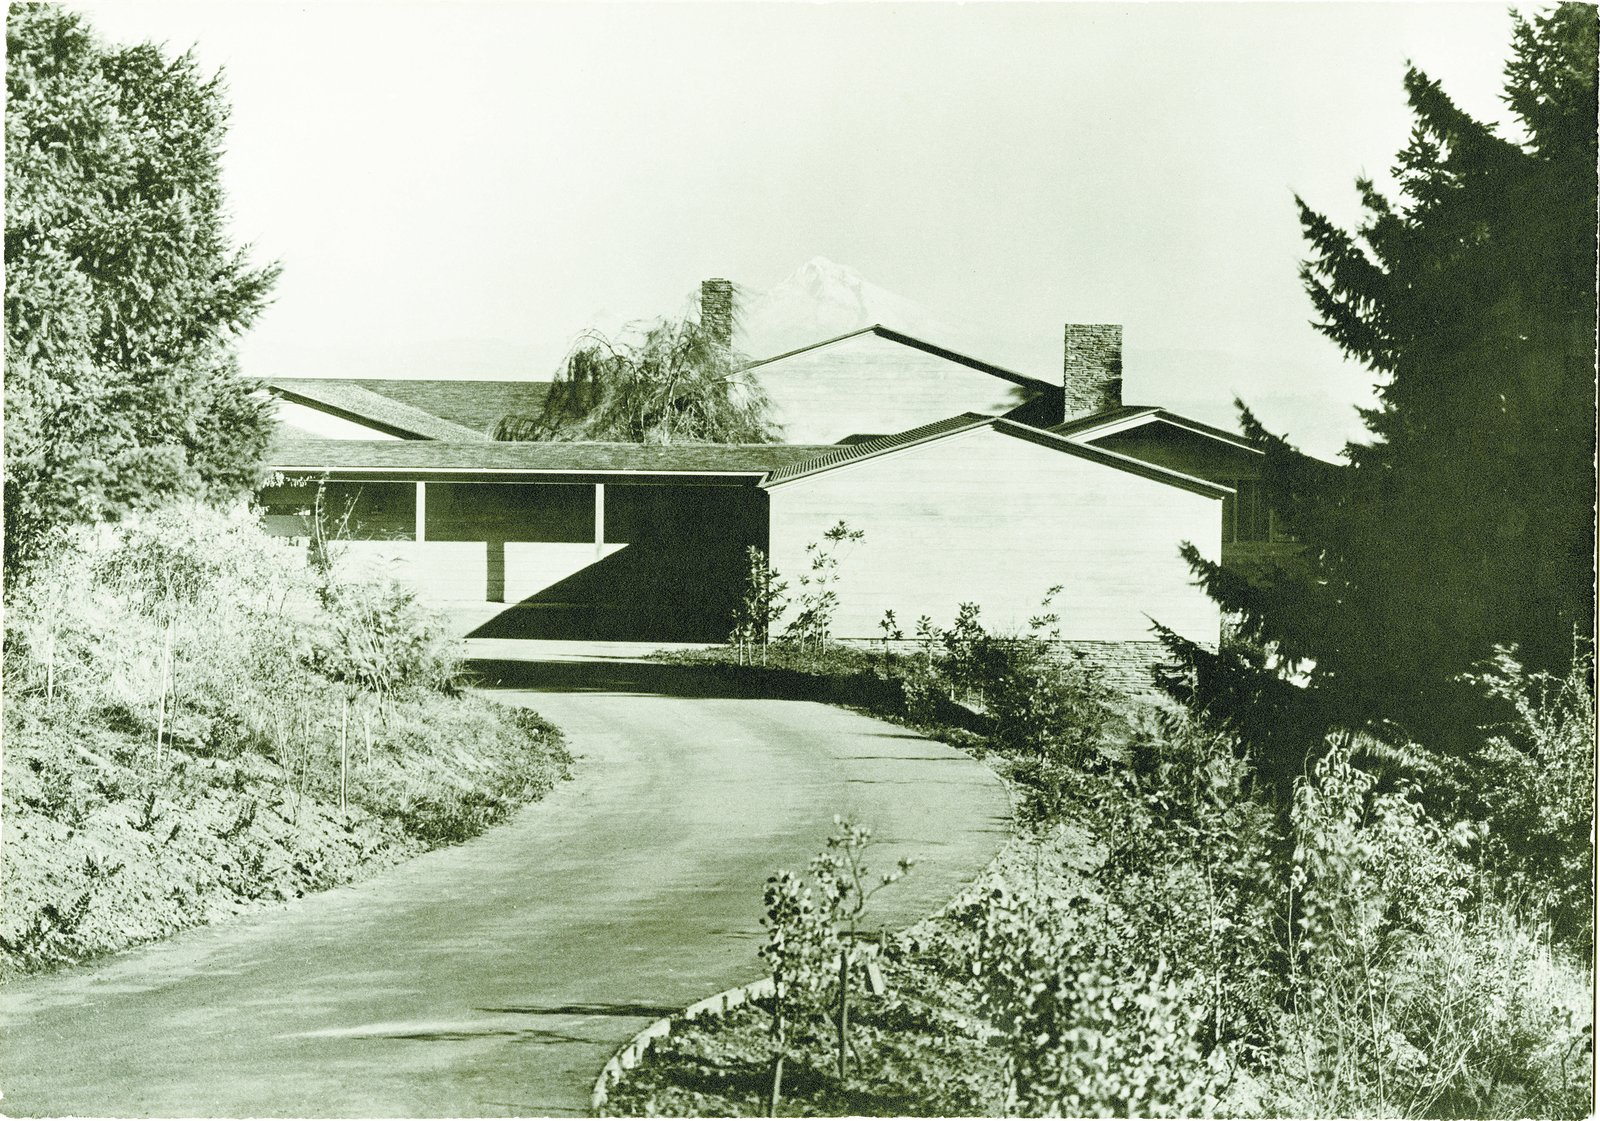 The black and white image captured the roof angles perfectly mirroring Mt. Hood.  Photo 2 of 15 in Spotlight on John Yeon, the Father of Northwest Regional Architecture